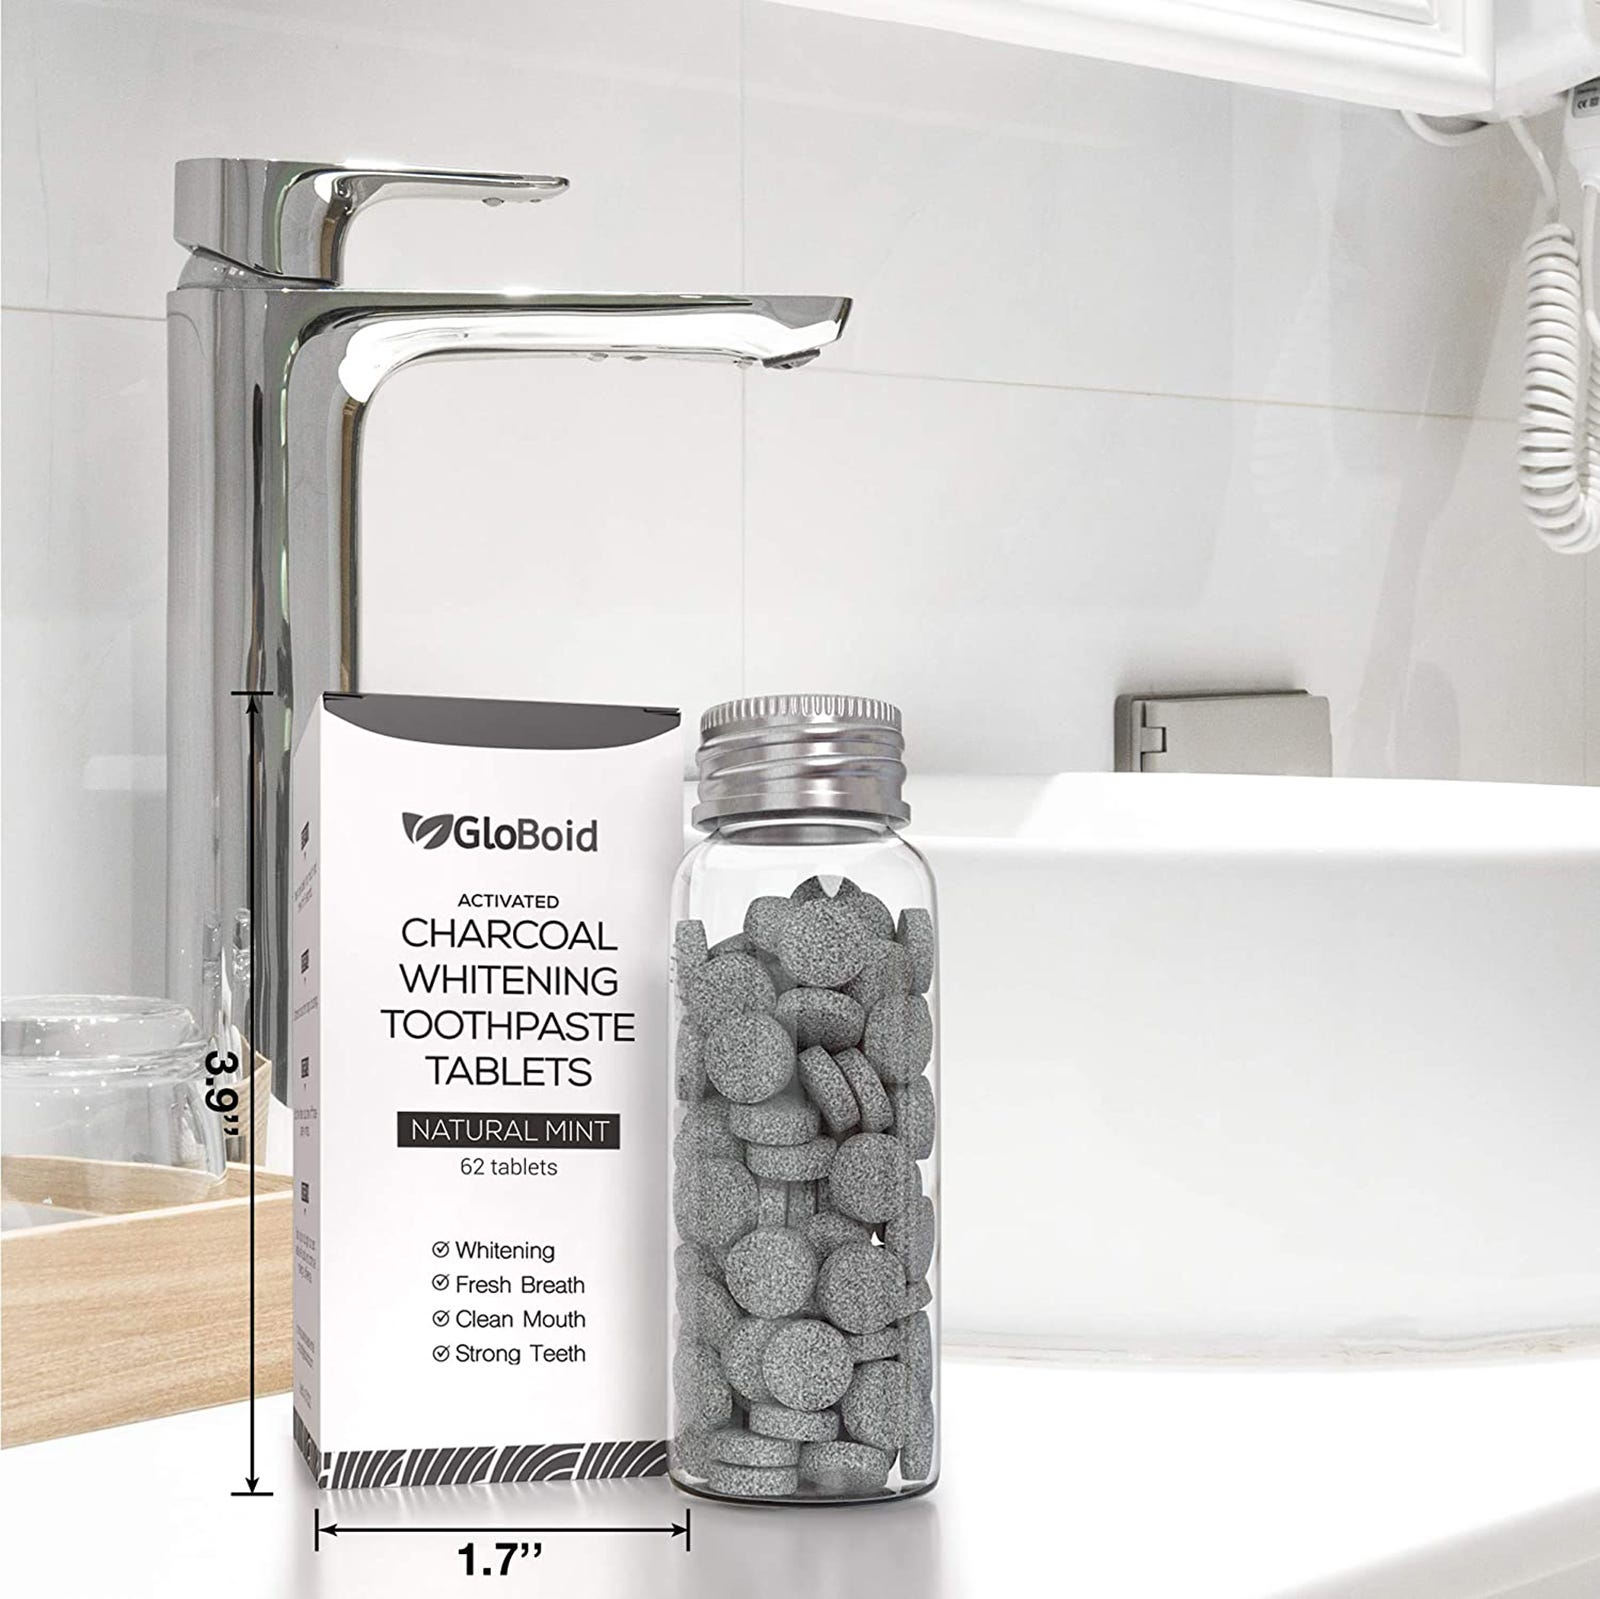 A see-through container with GloBoid's activated charcoal toothpaste tablets standing next to its box on a sink